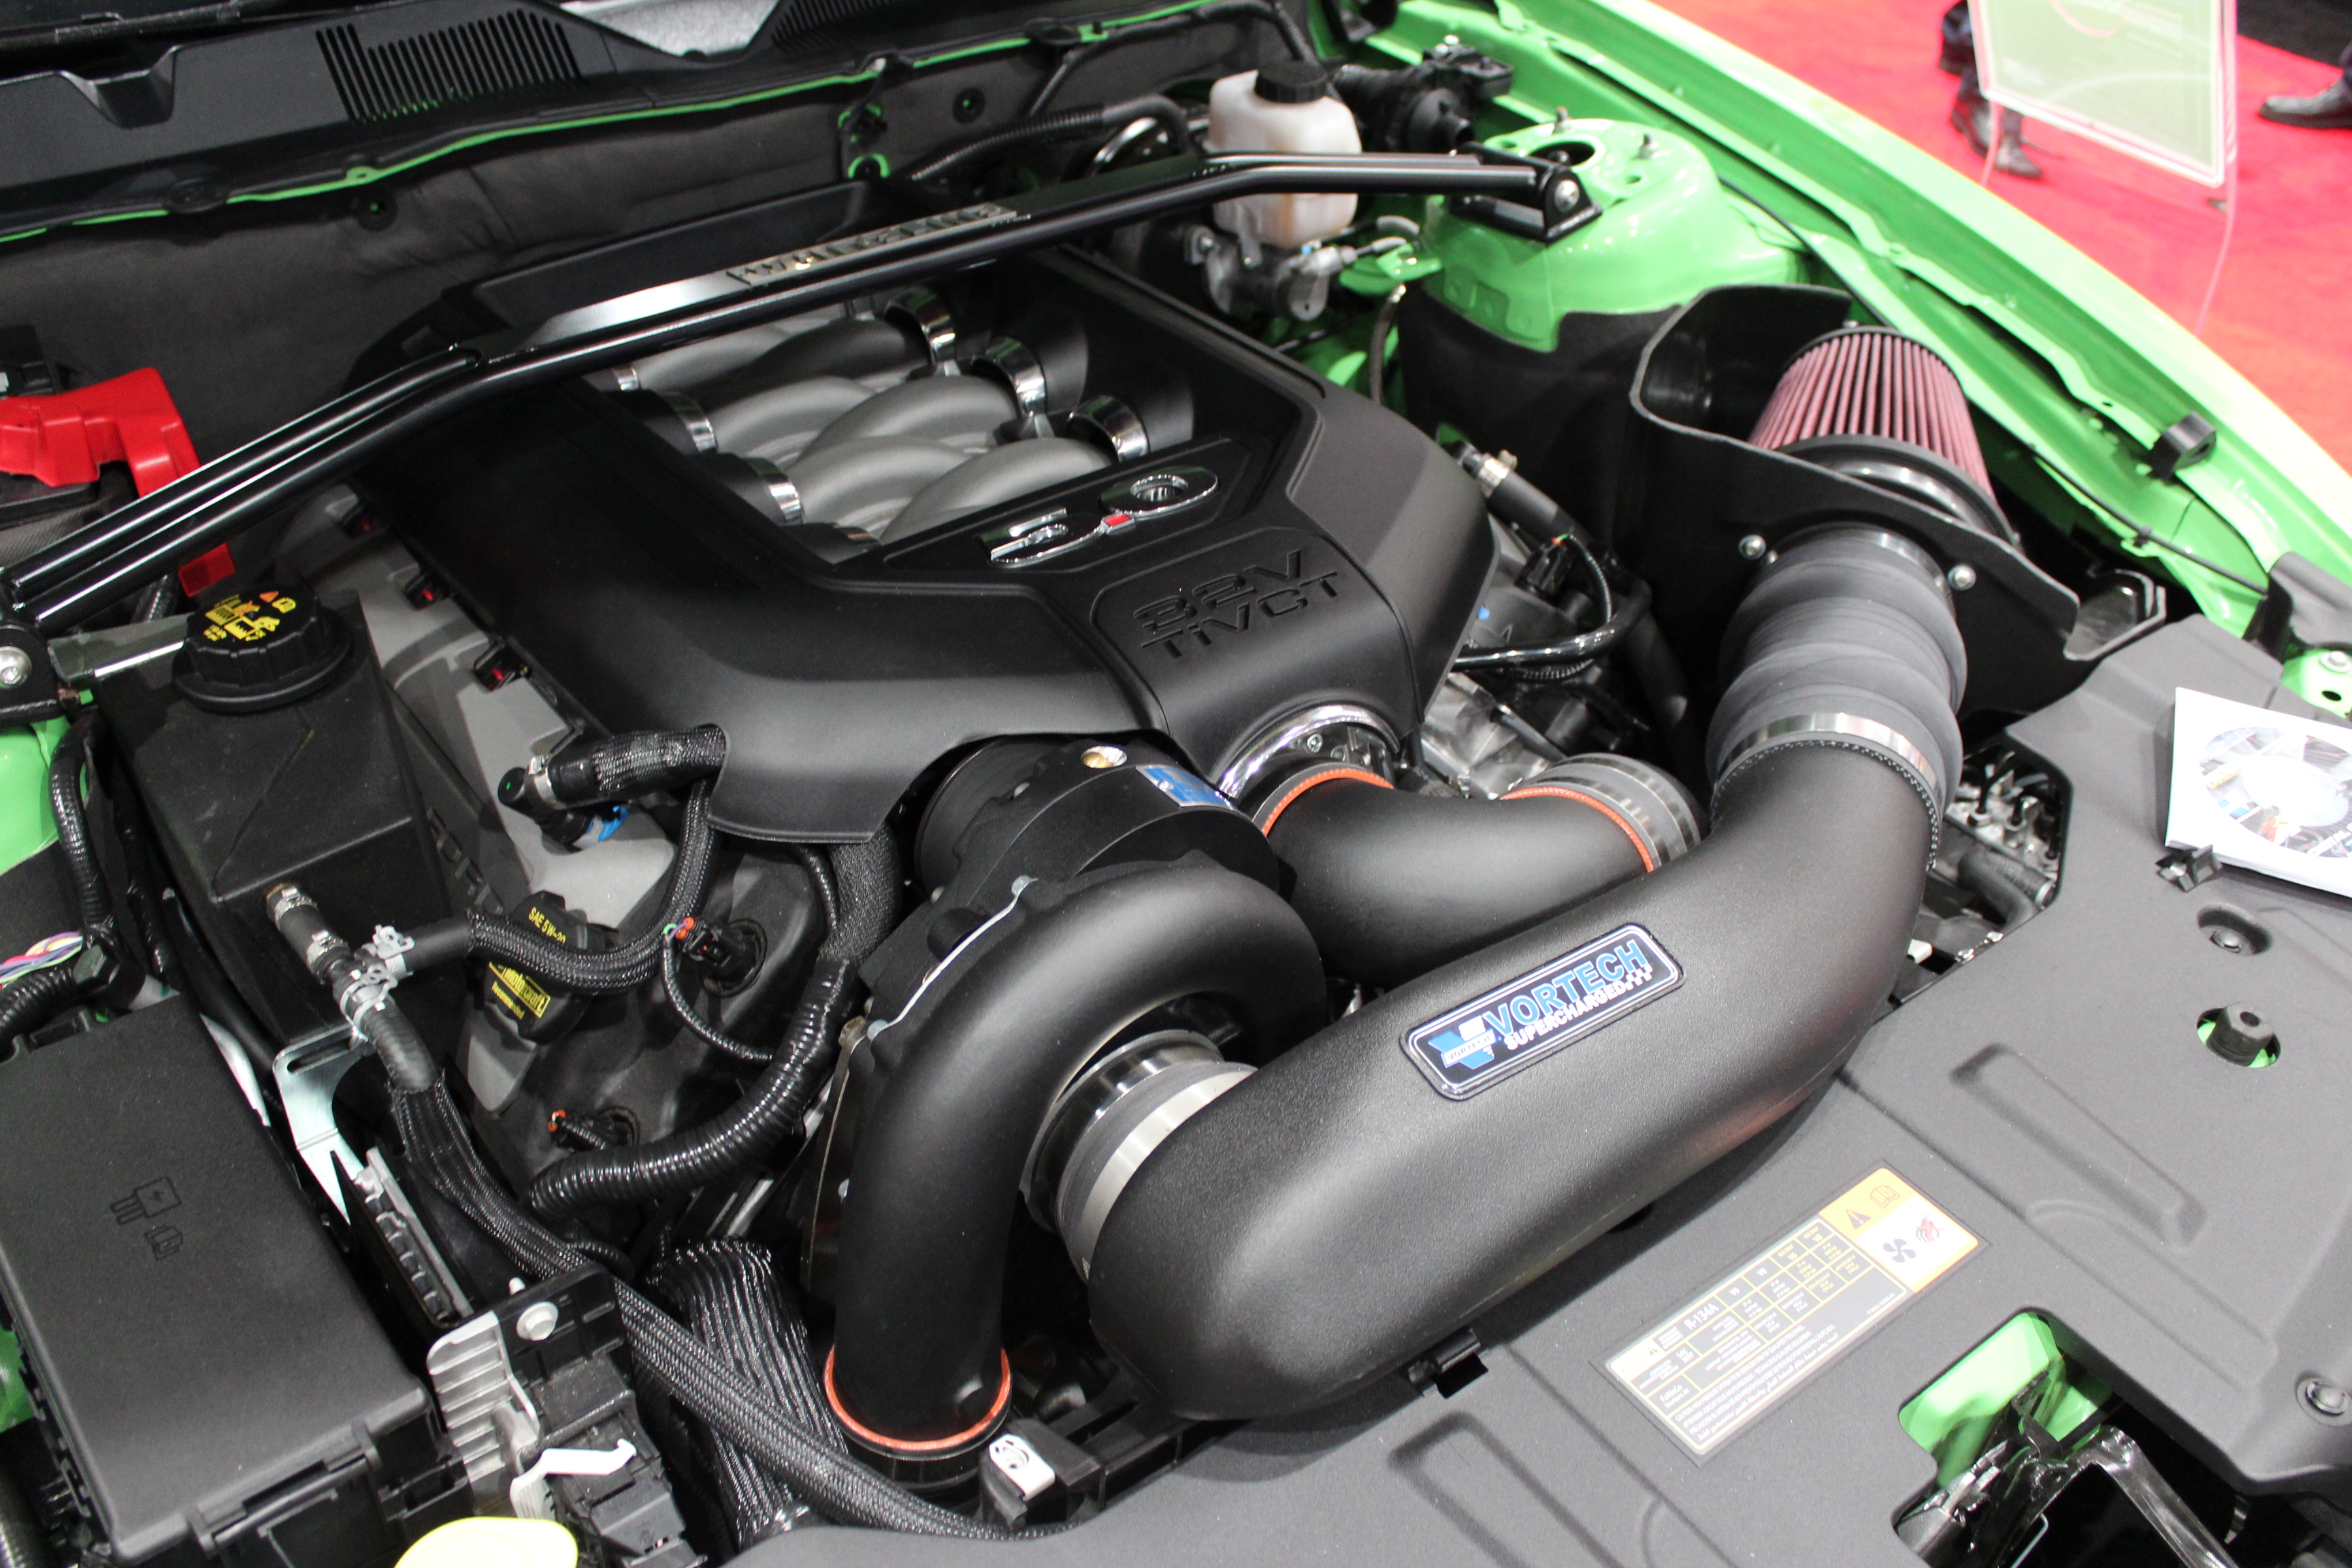 Nikki Frost's Vortech V-3 Si Supercharged 2013 Mustang GT in